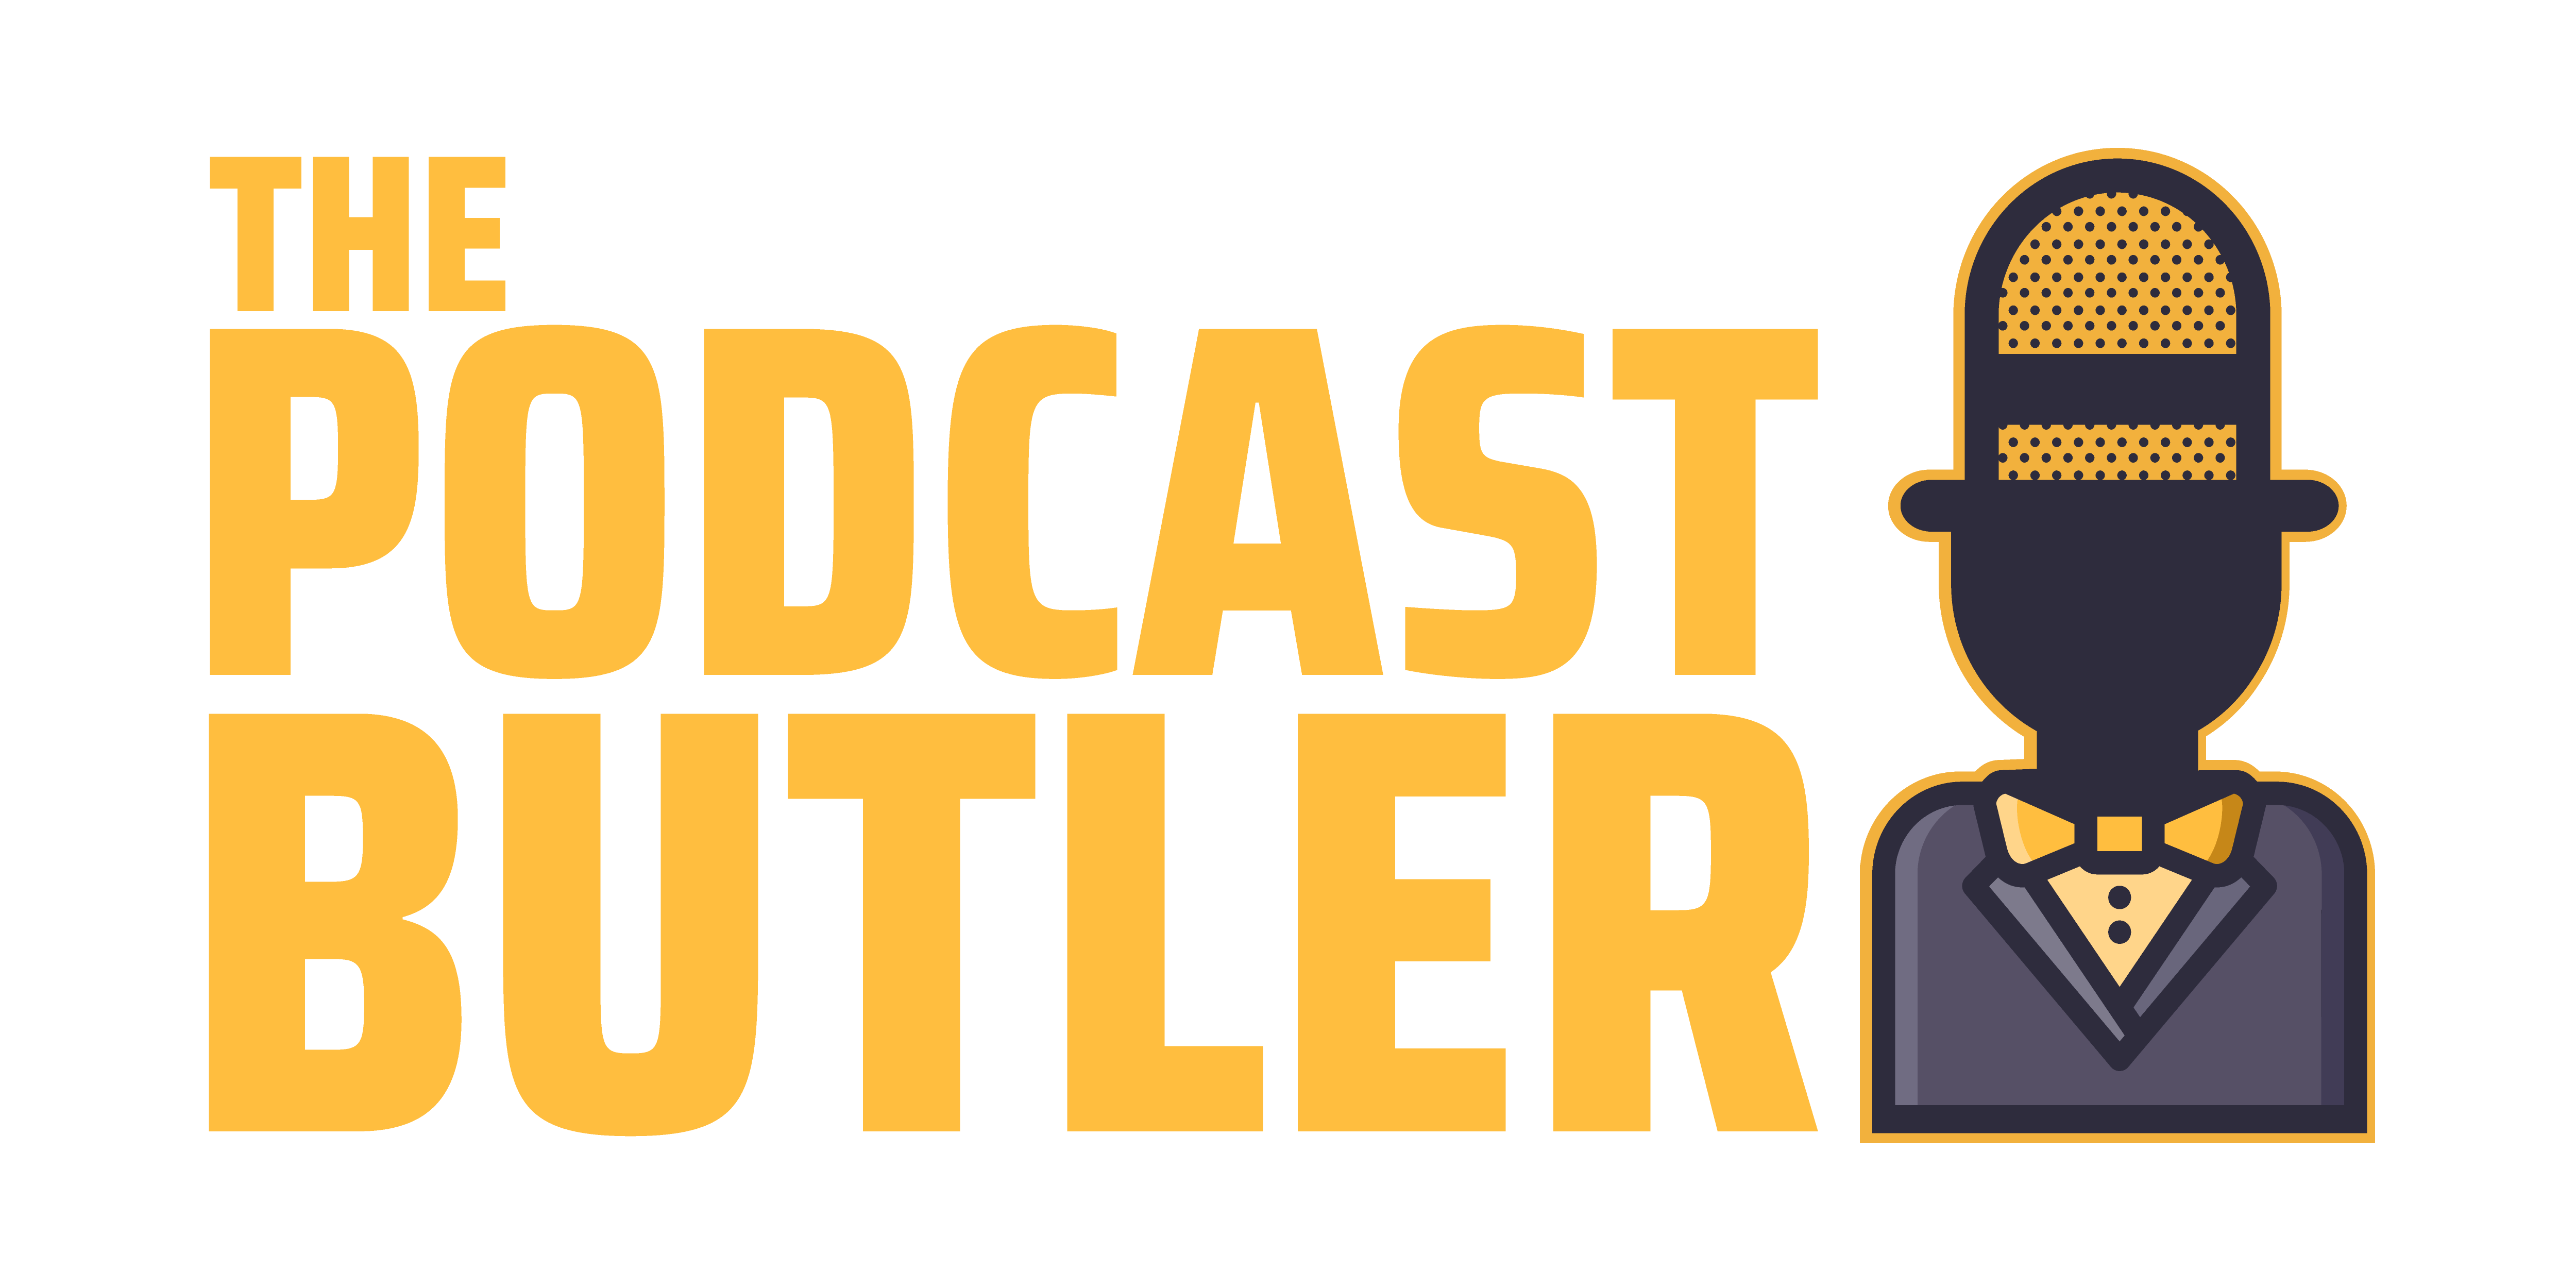 The Podcast Butler